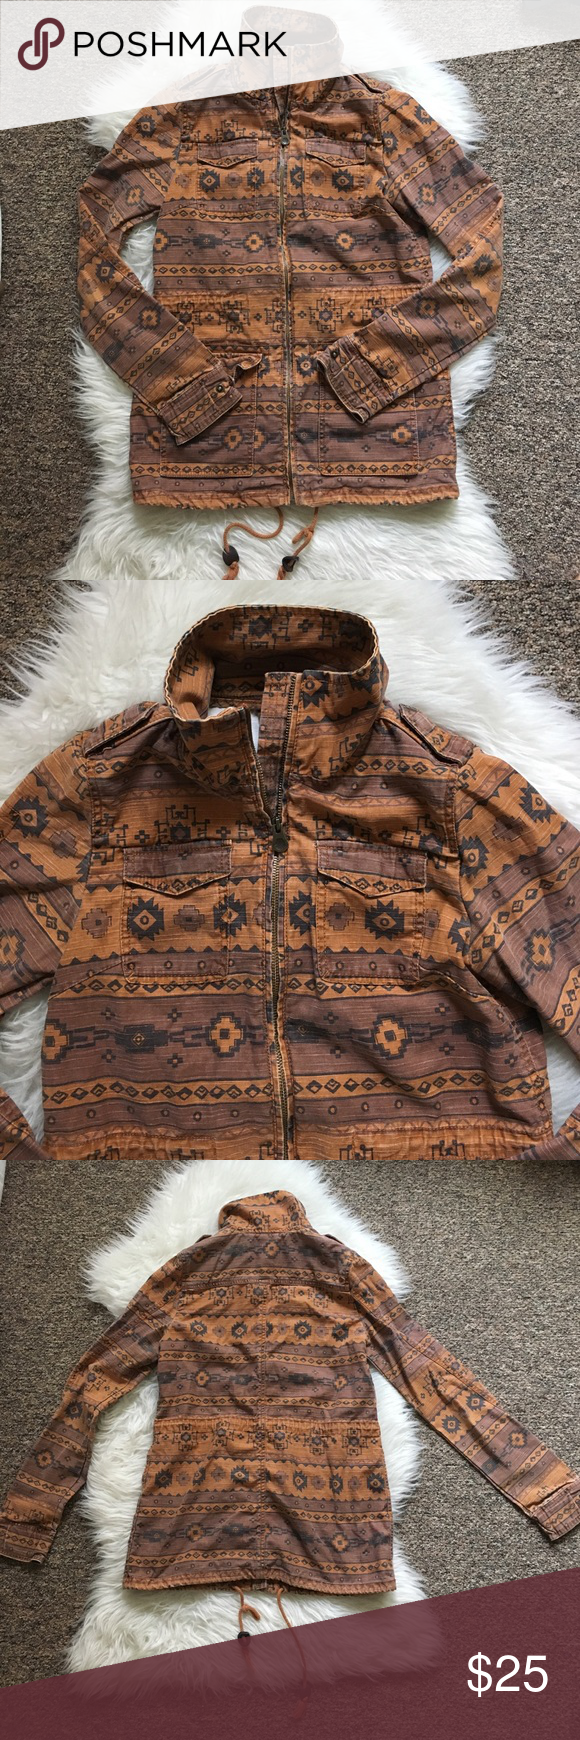 Divided Navajo print coat Beautiful lightweight coat. Copper/orange coloring with a fun print. Gently worn and easy to layer for more warmth! Fits like a S/M✌🏽 H&M Jackets & Coats Utility Jackets